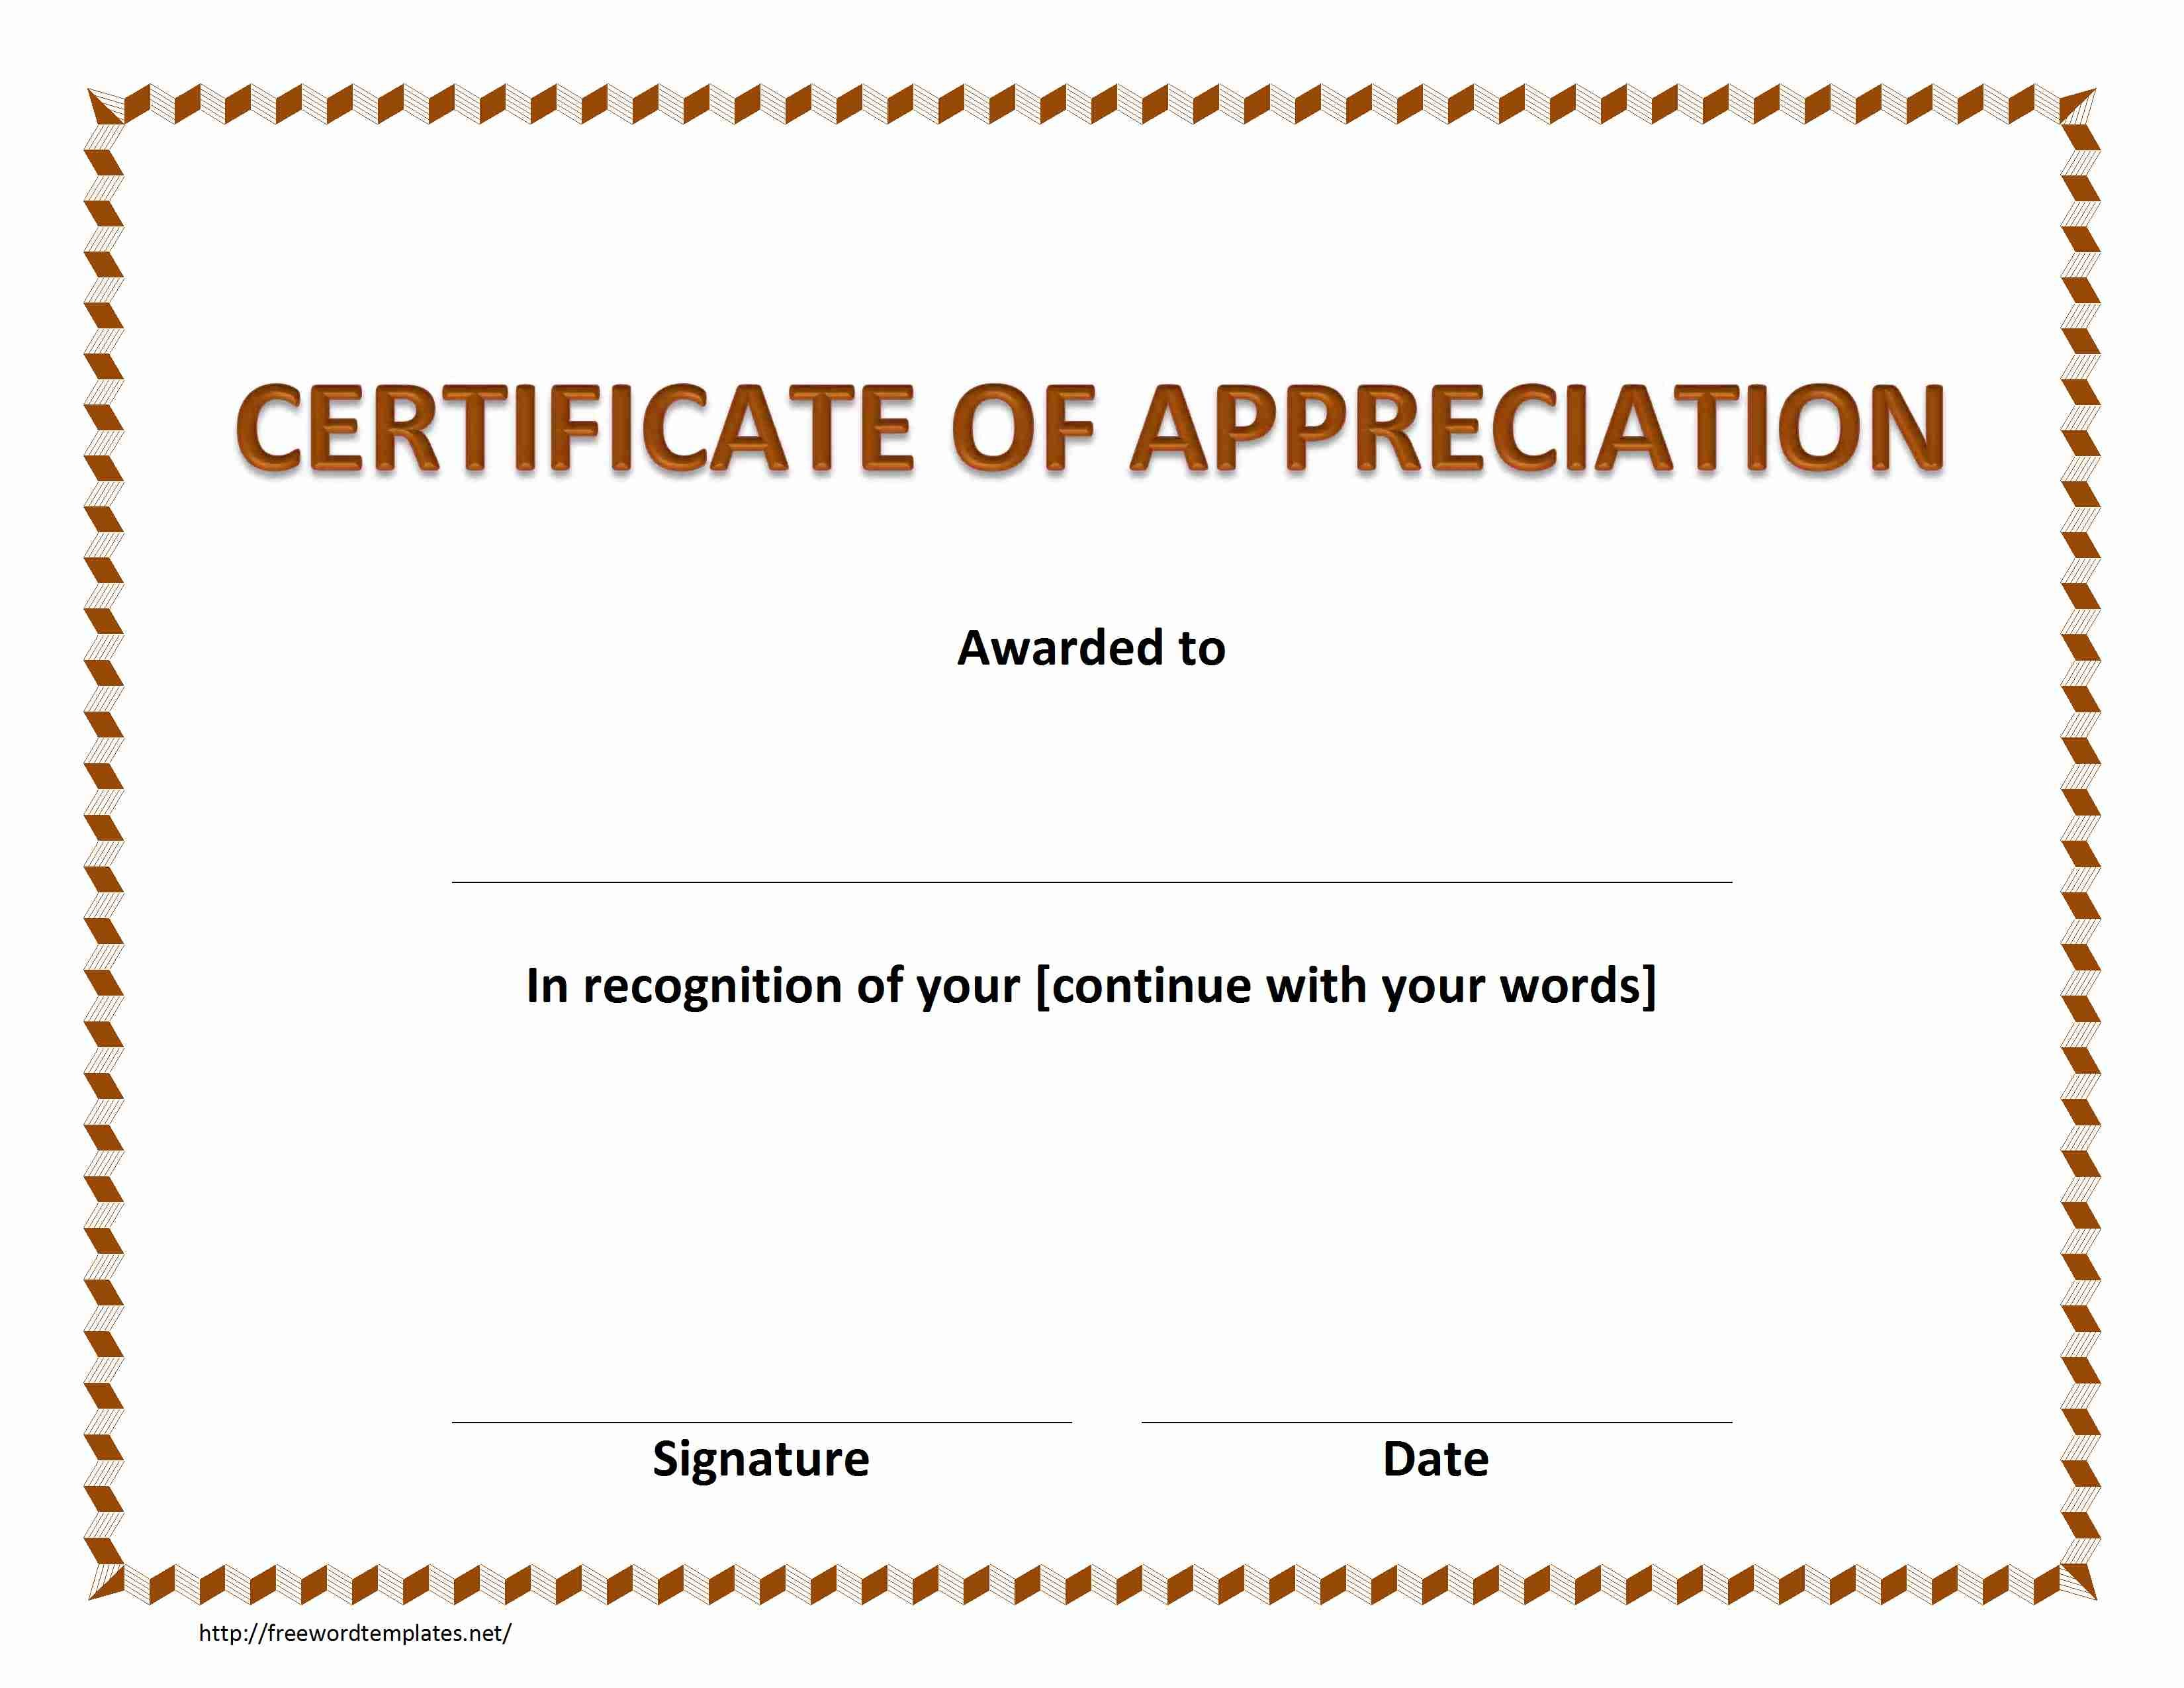 Certificate Of Recognition Word Template  – Elsik Blue Cetane With Certificate Of Recognition Word Template